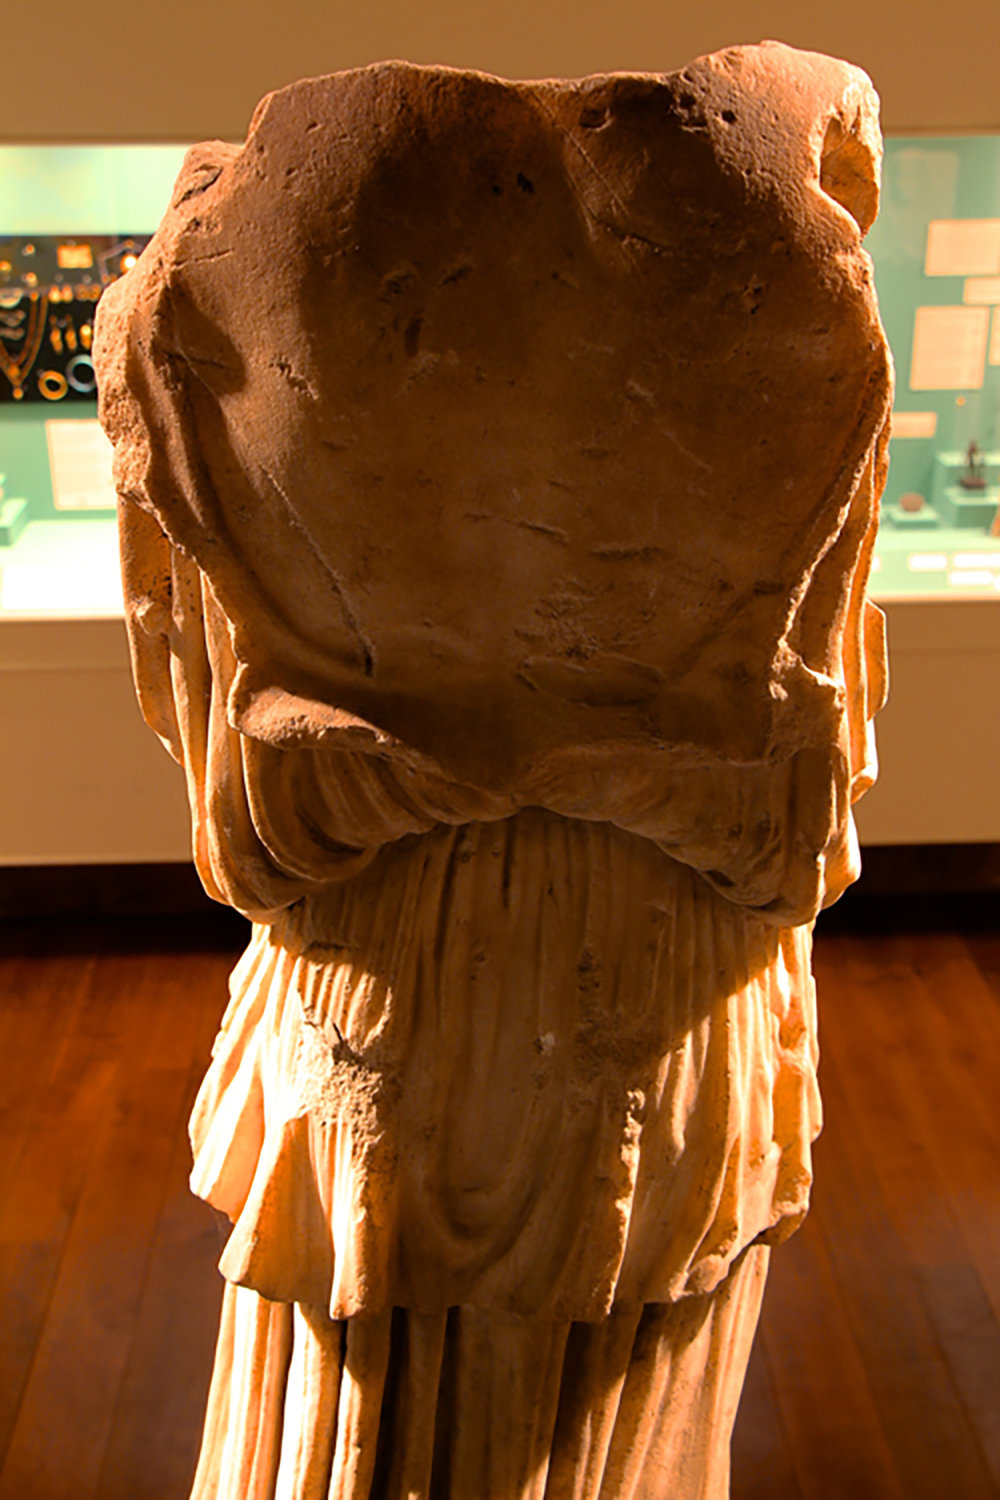 Figure 2: Back View of Statue.